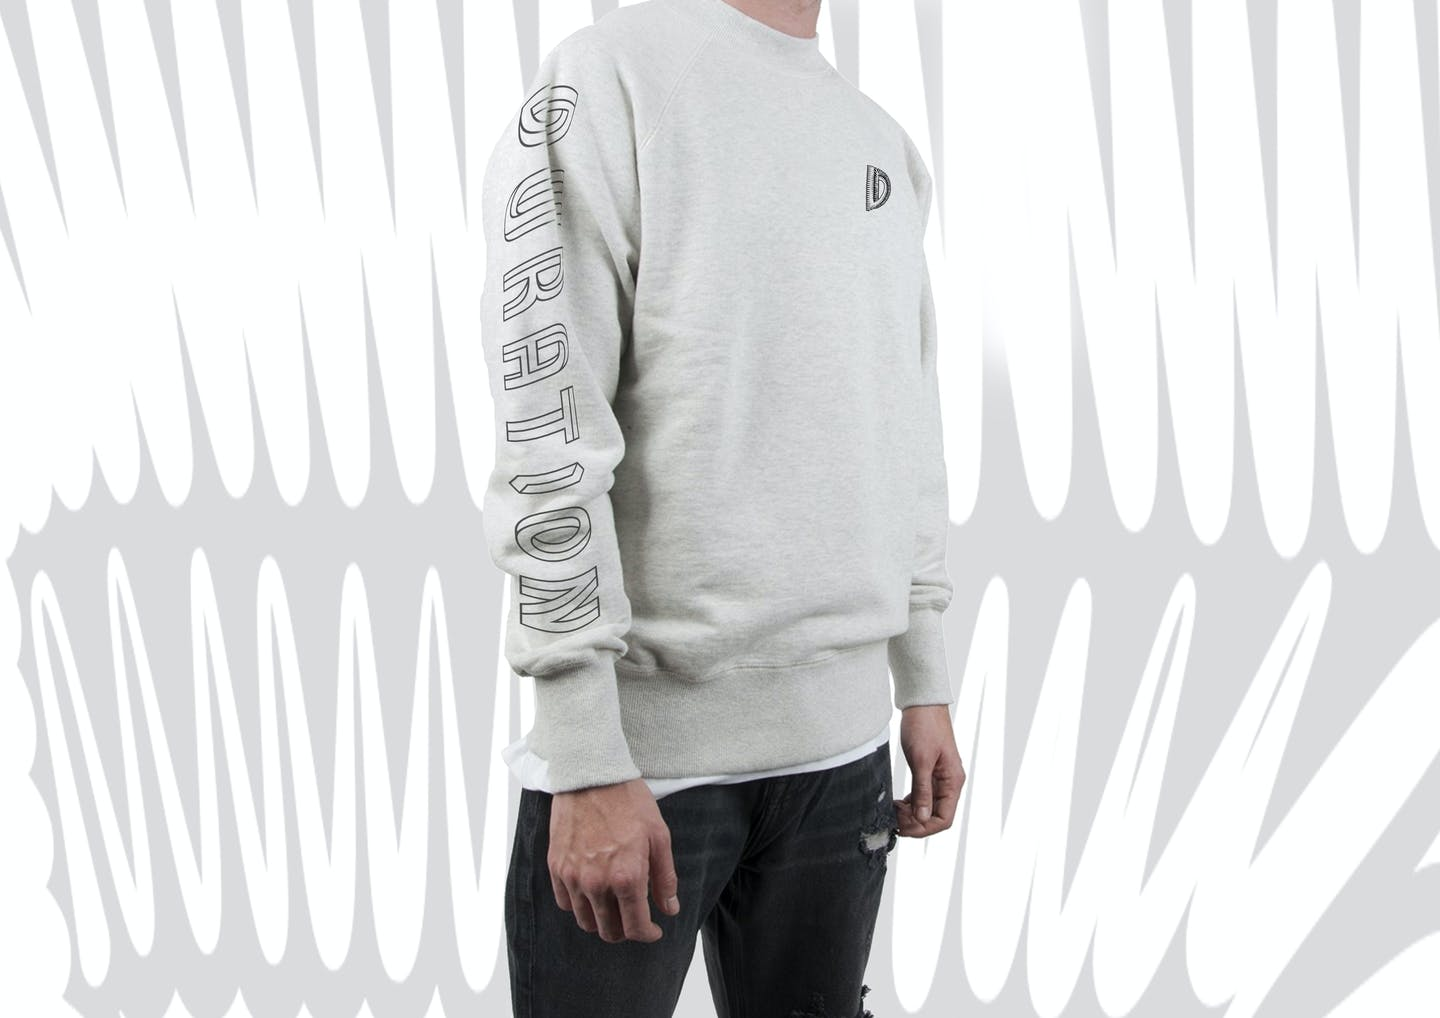 CrewNeckGreyB